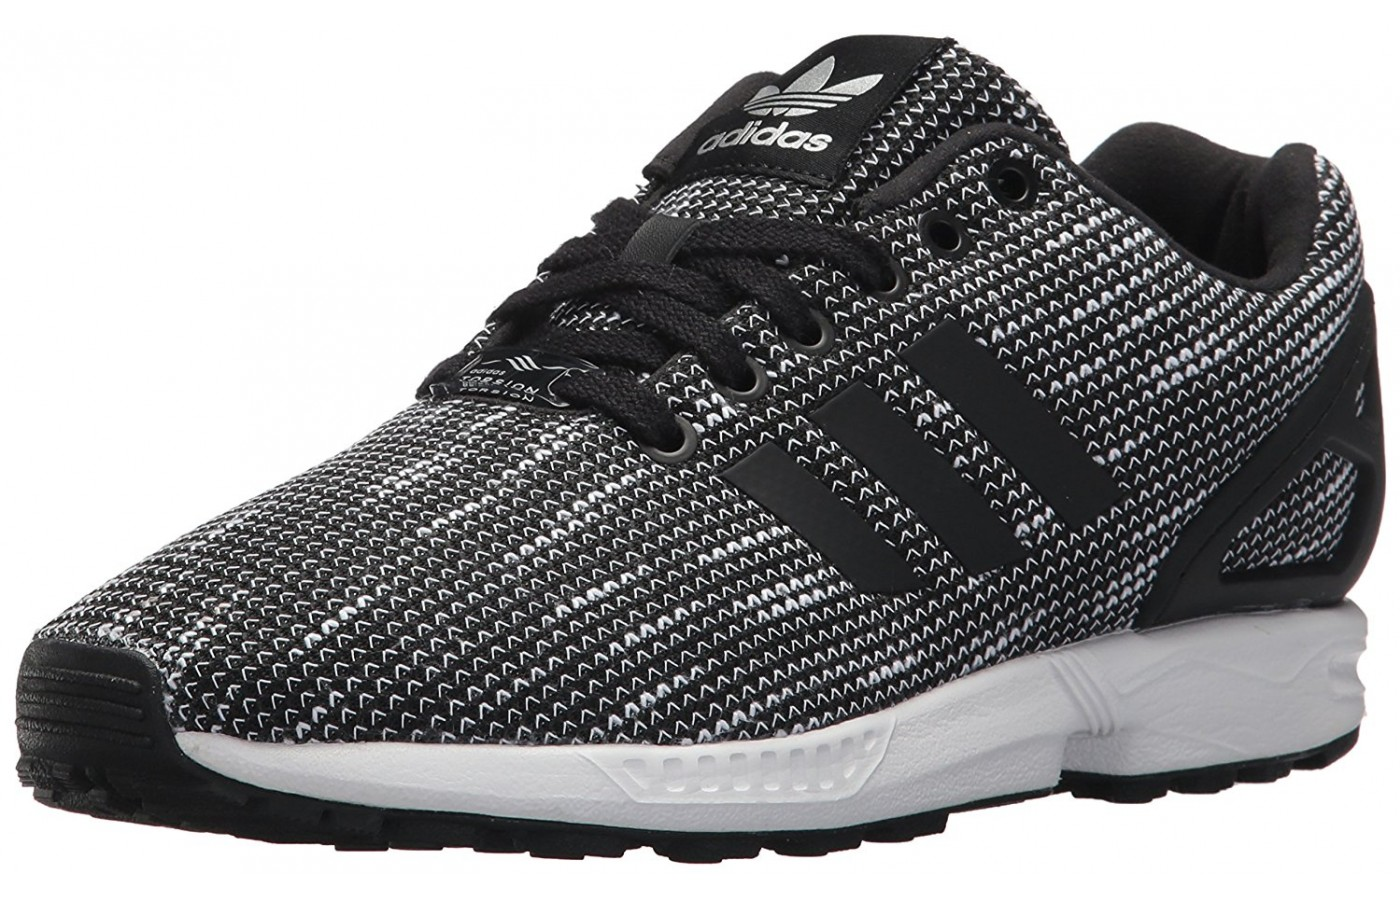 Adidas ZX Flux Reviewed & Tested for Performance in 2018